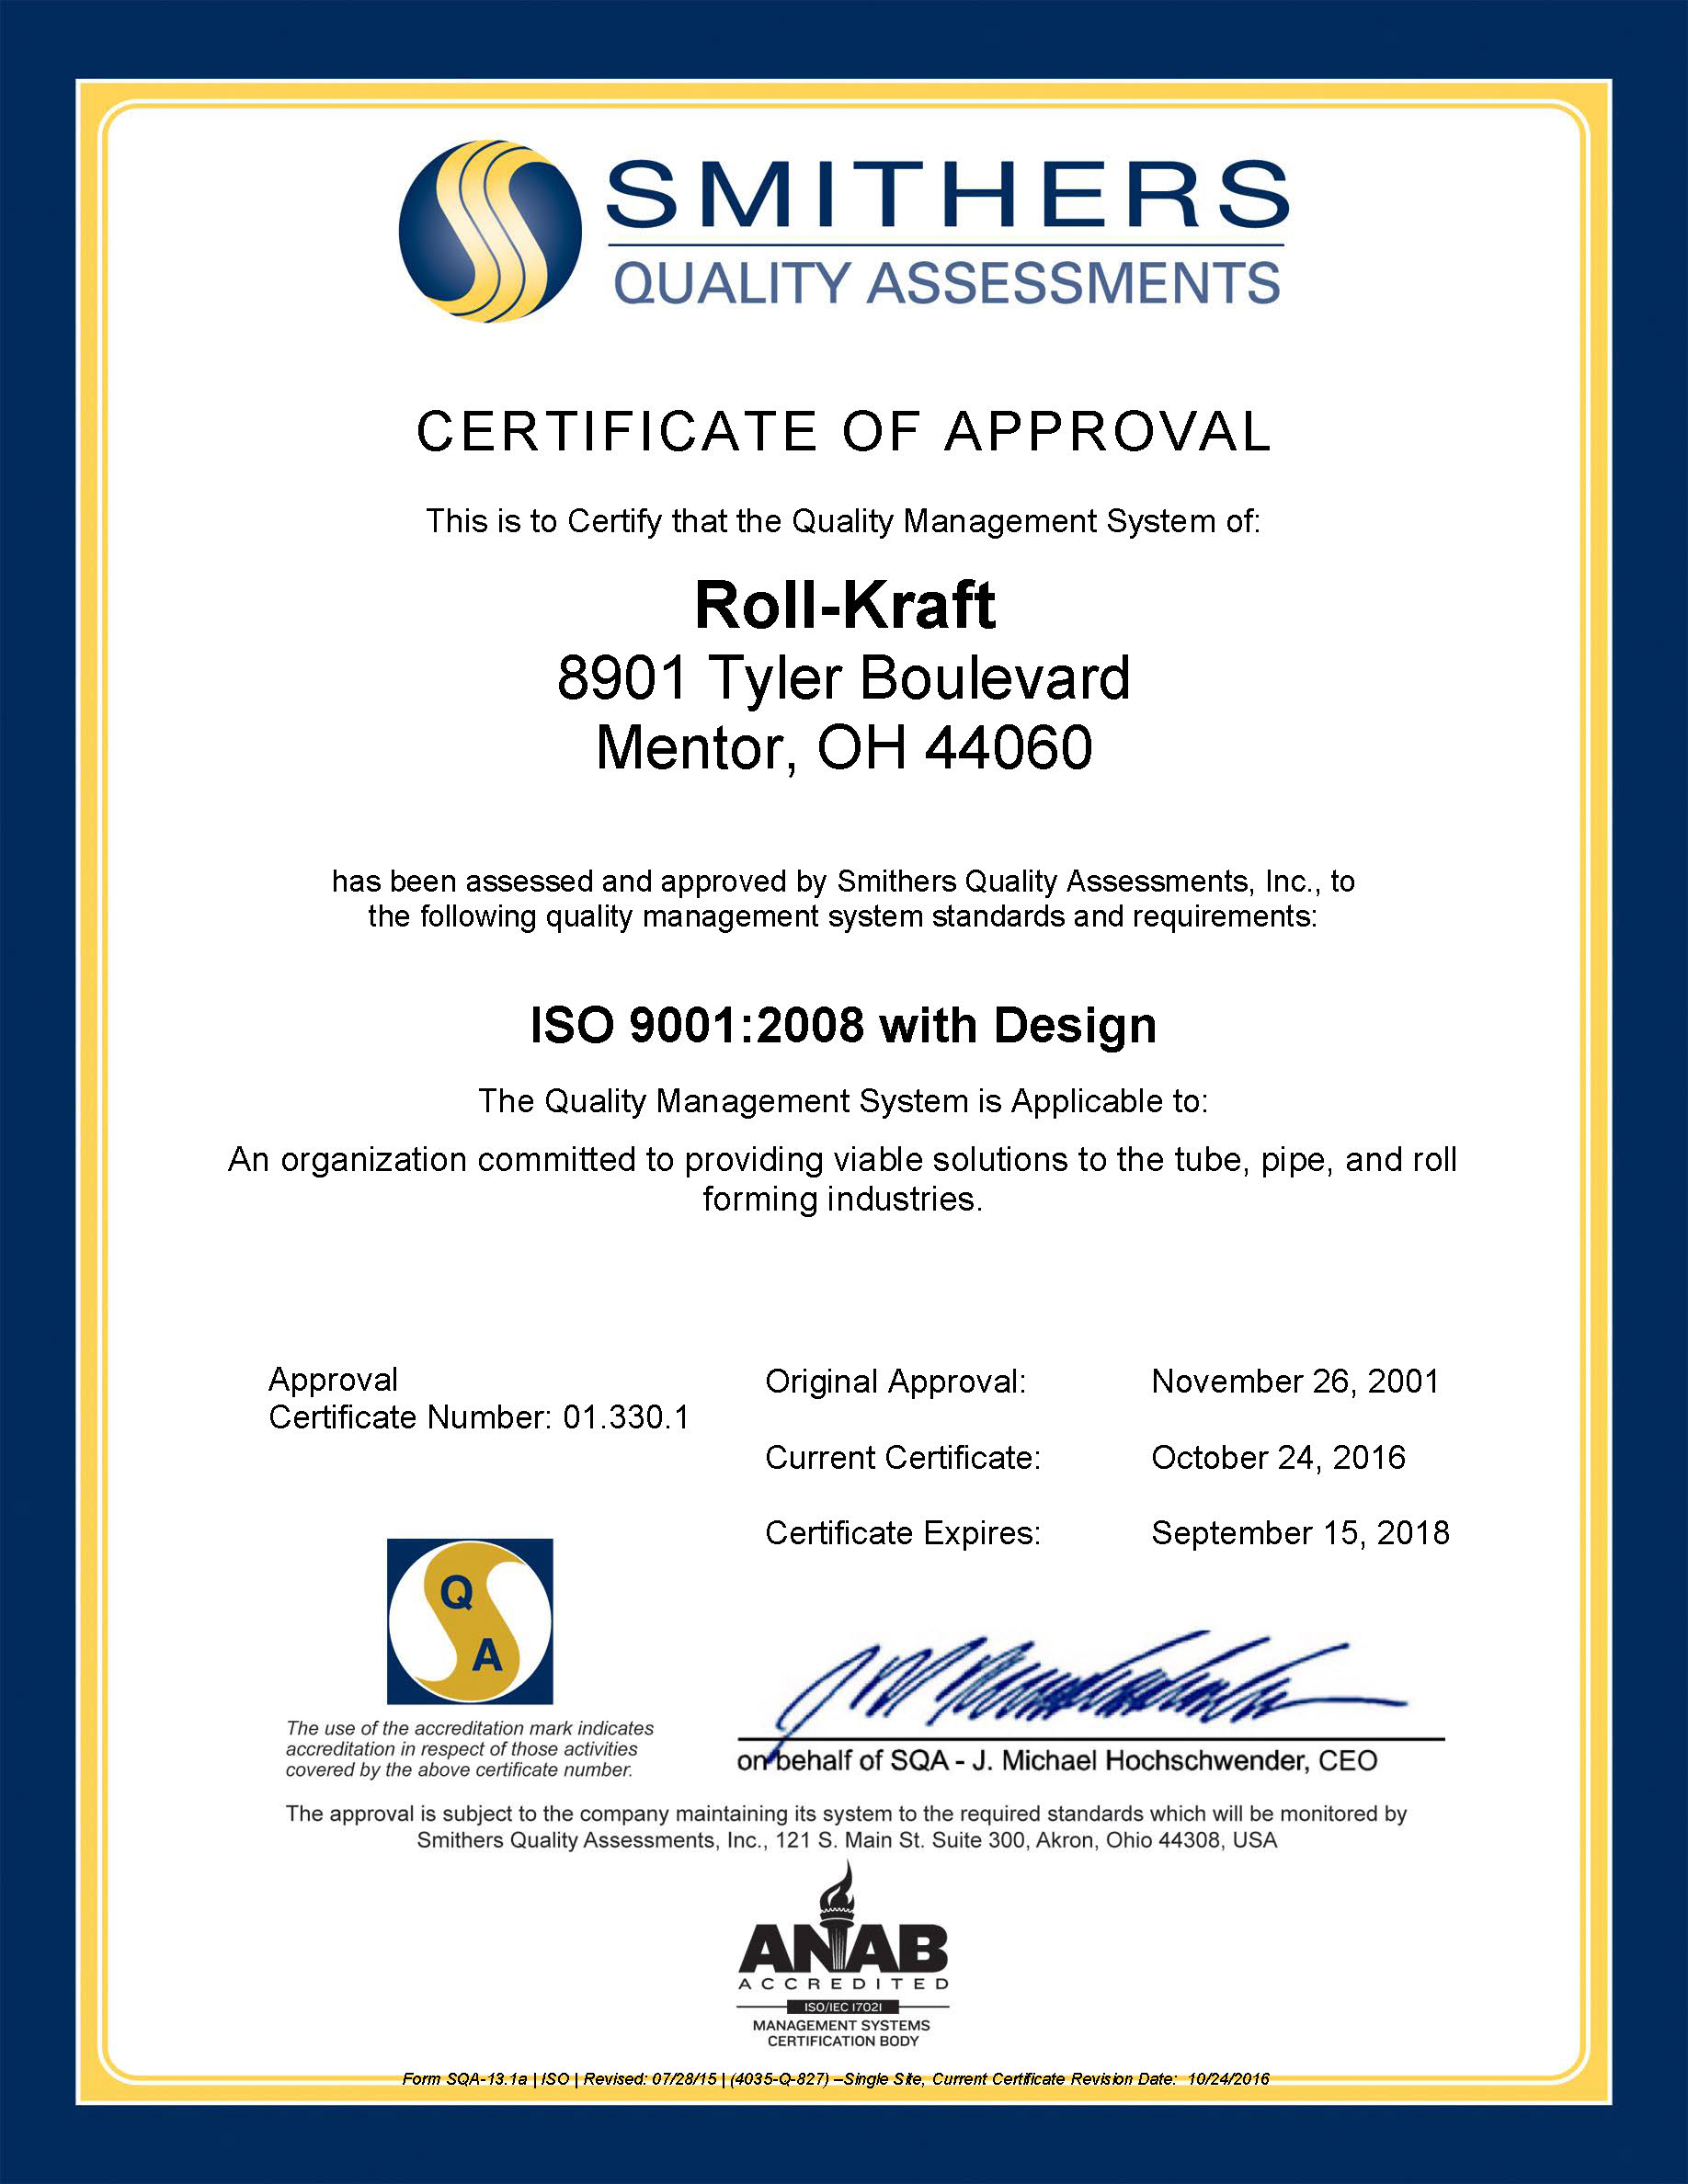 Quality management iso 90012008 certified with design click here to download iso certification and print the file xflitez Images